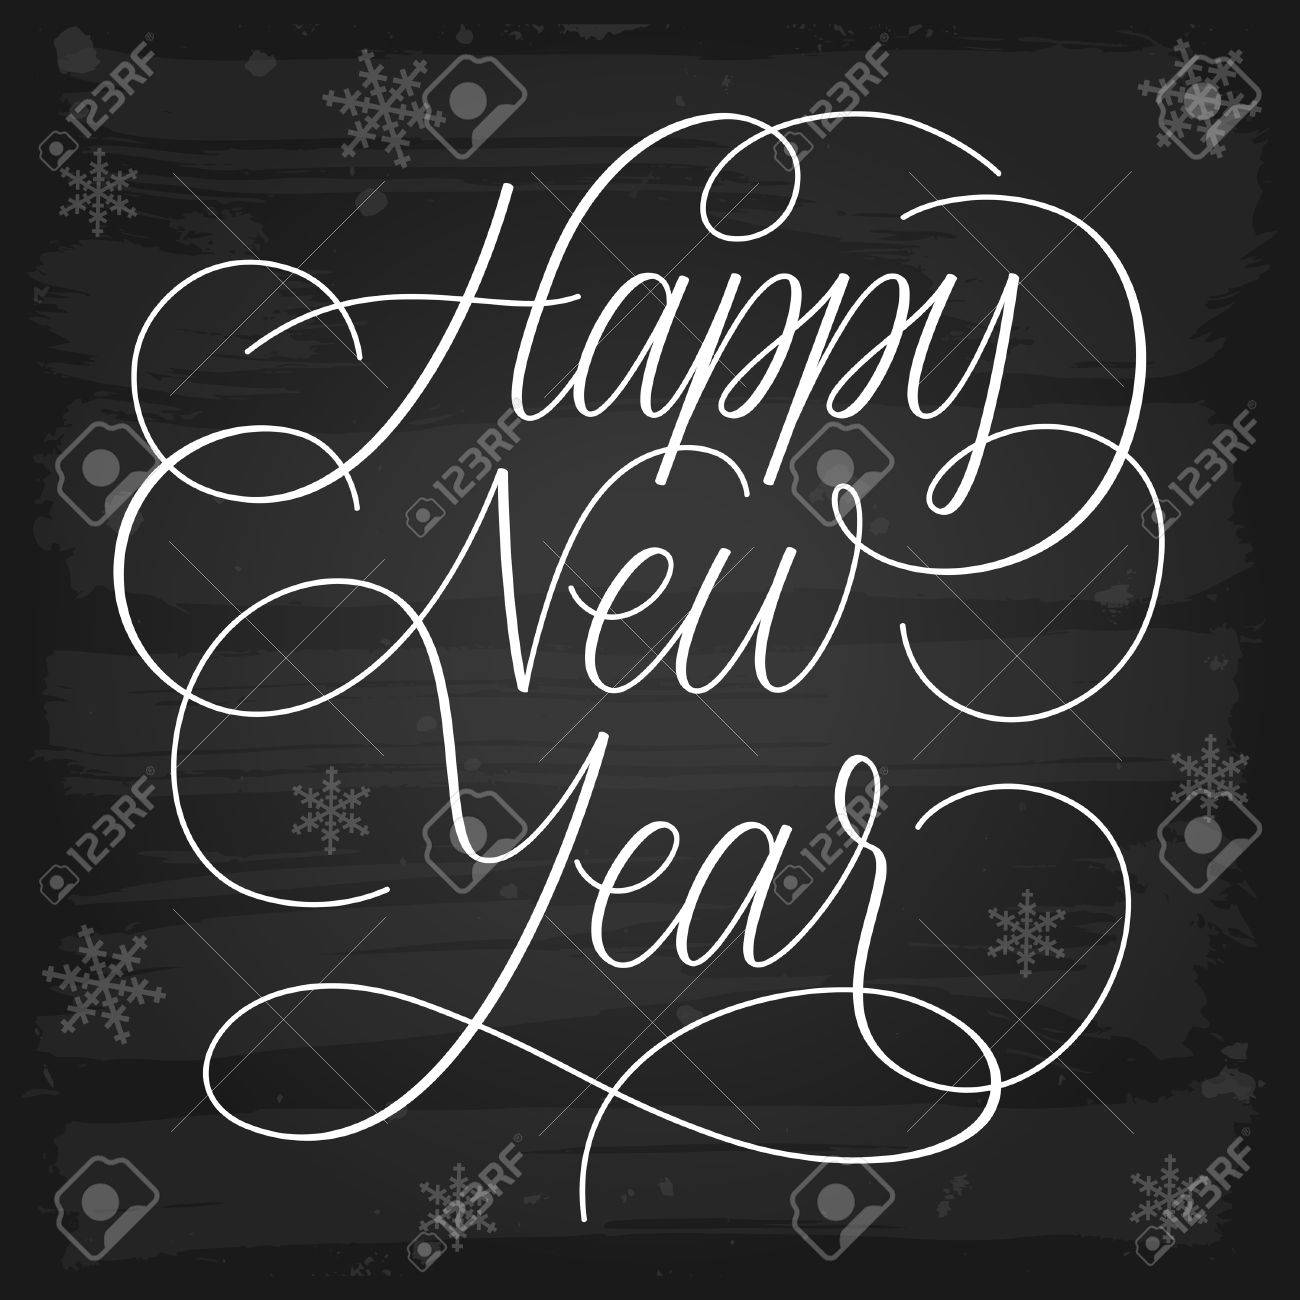 Happy New Year greetings chalkboard EPS-10 vector with transparency - 23202672